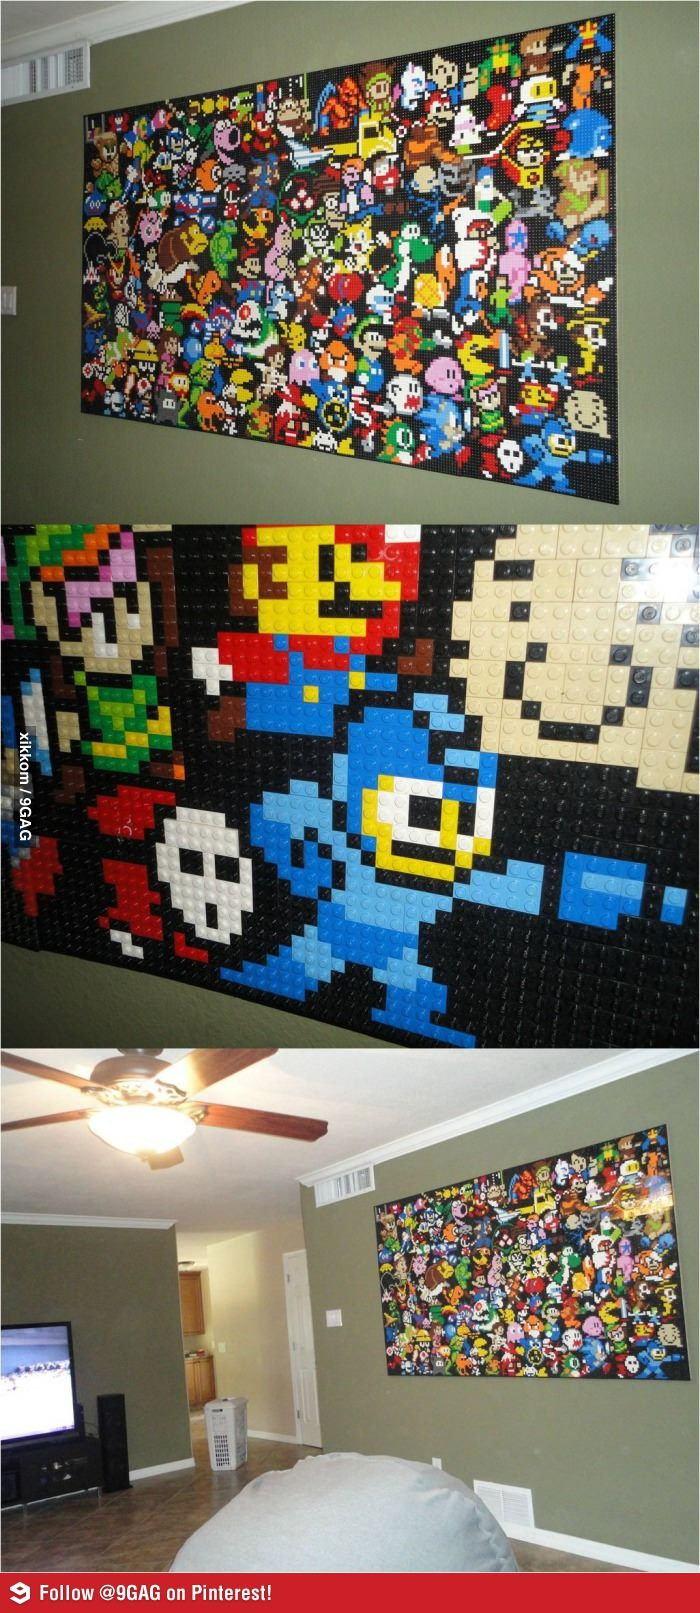 video game classics on a lego wall video game pinterest lego projekte und ideen. Black Bedroom Furniture Sets. Home Design Ideas